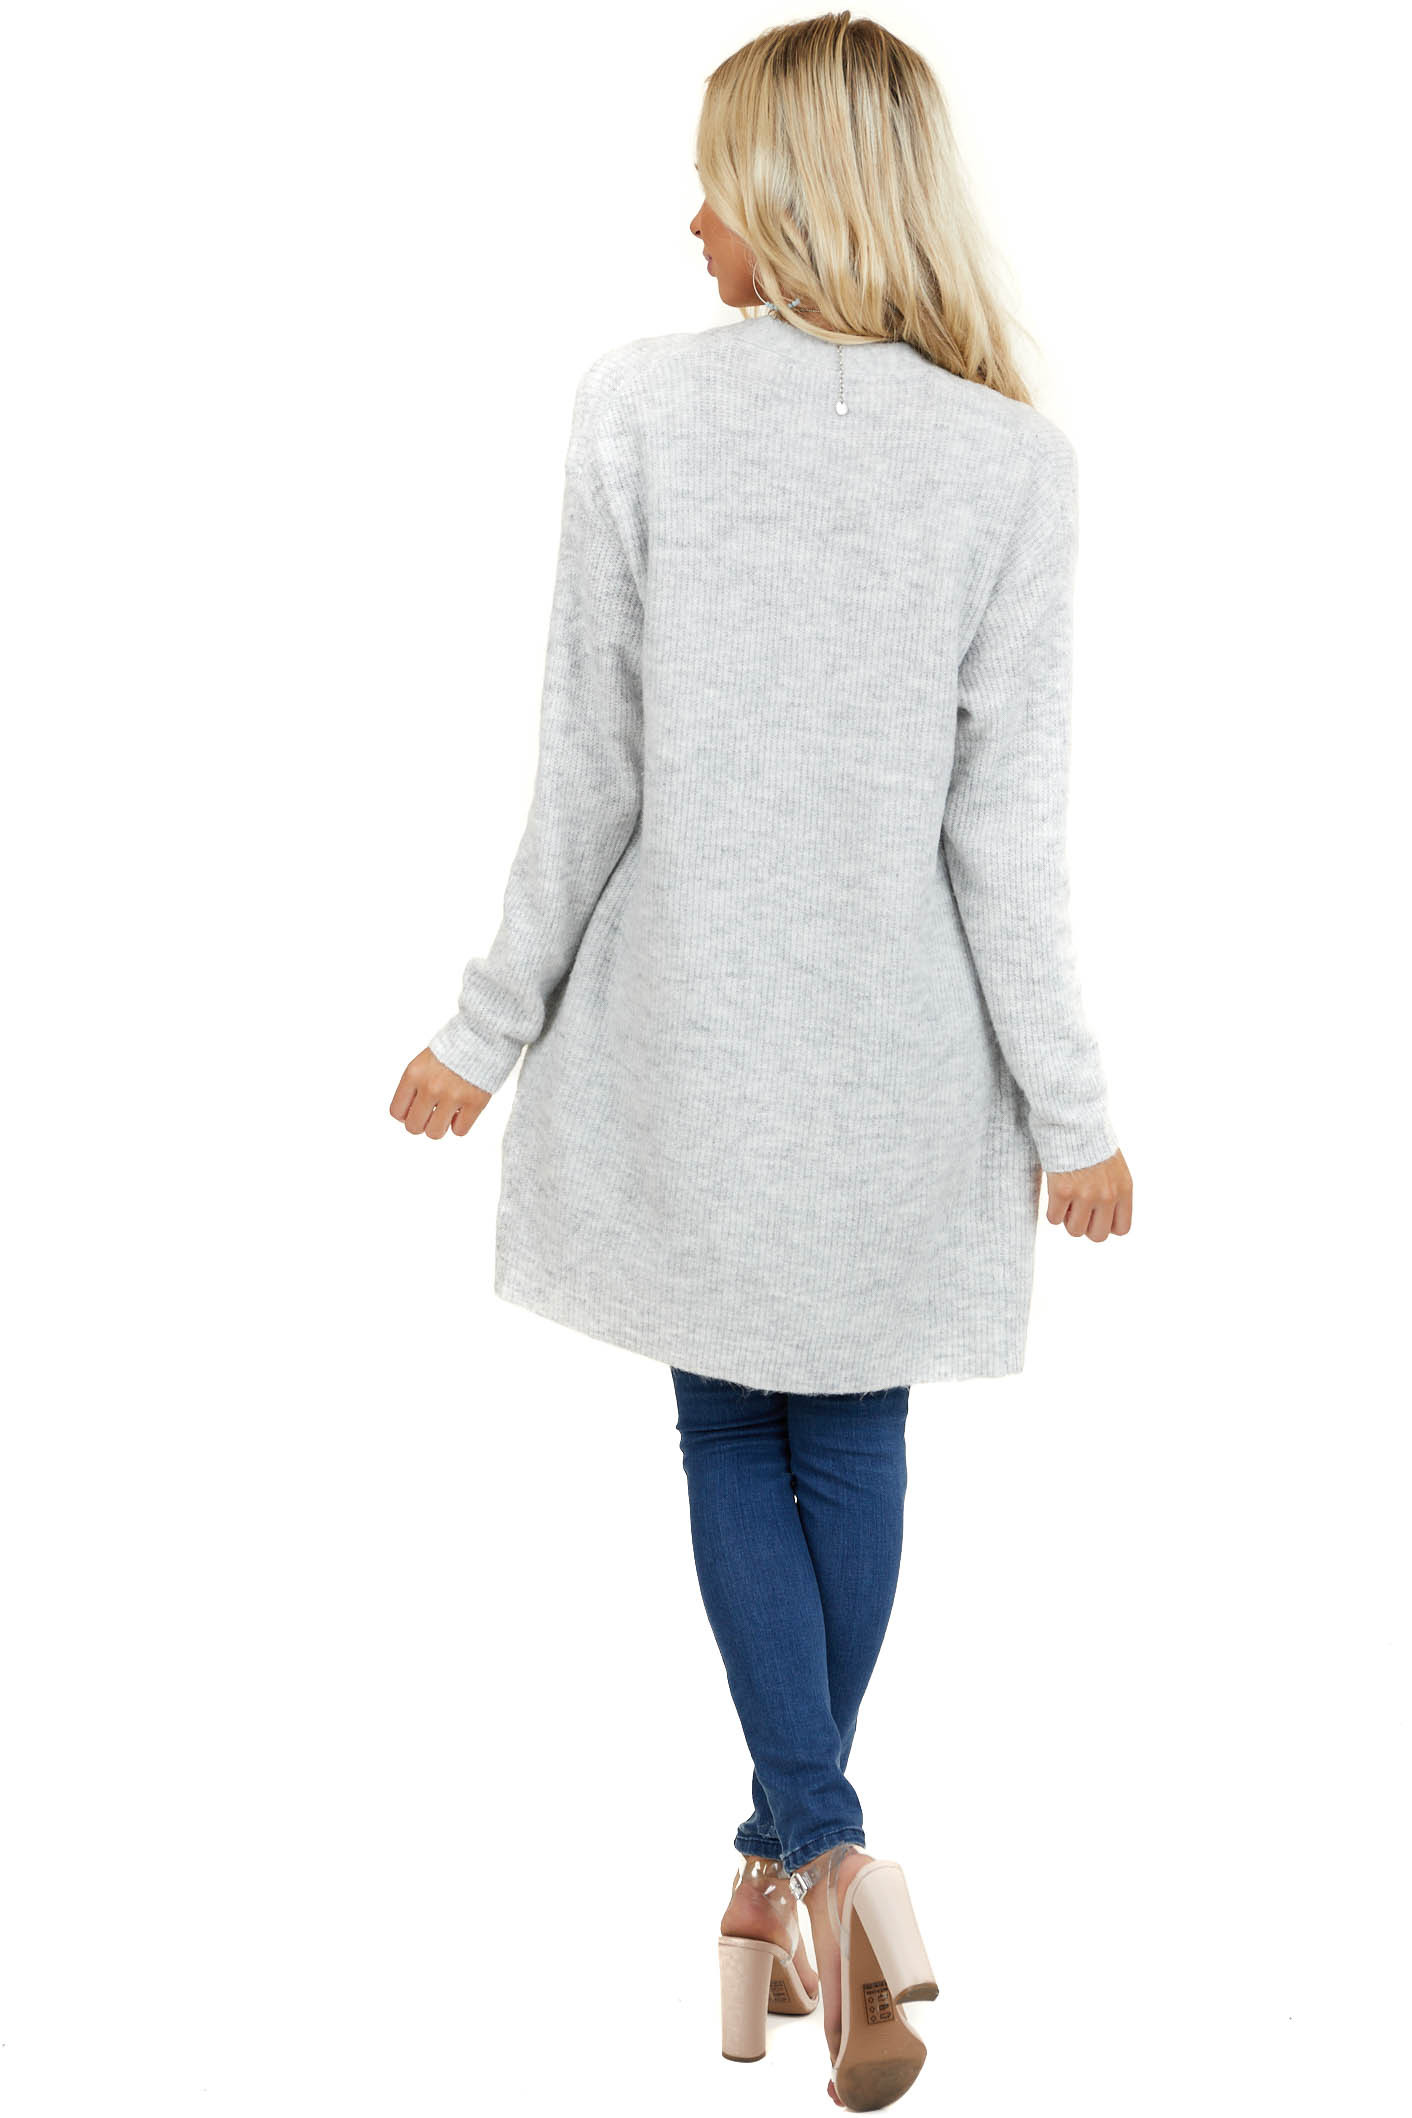 Dove Grey Open Front Sweater Cardigan with Pockets